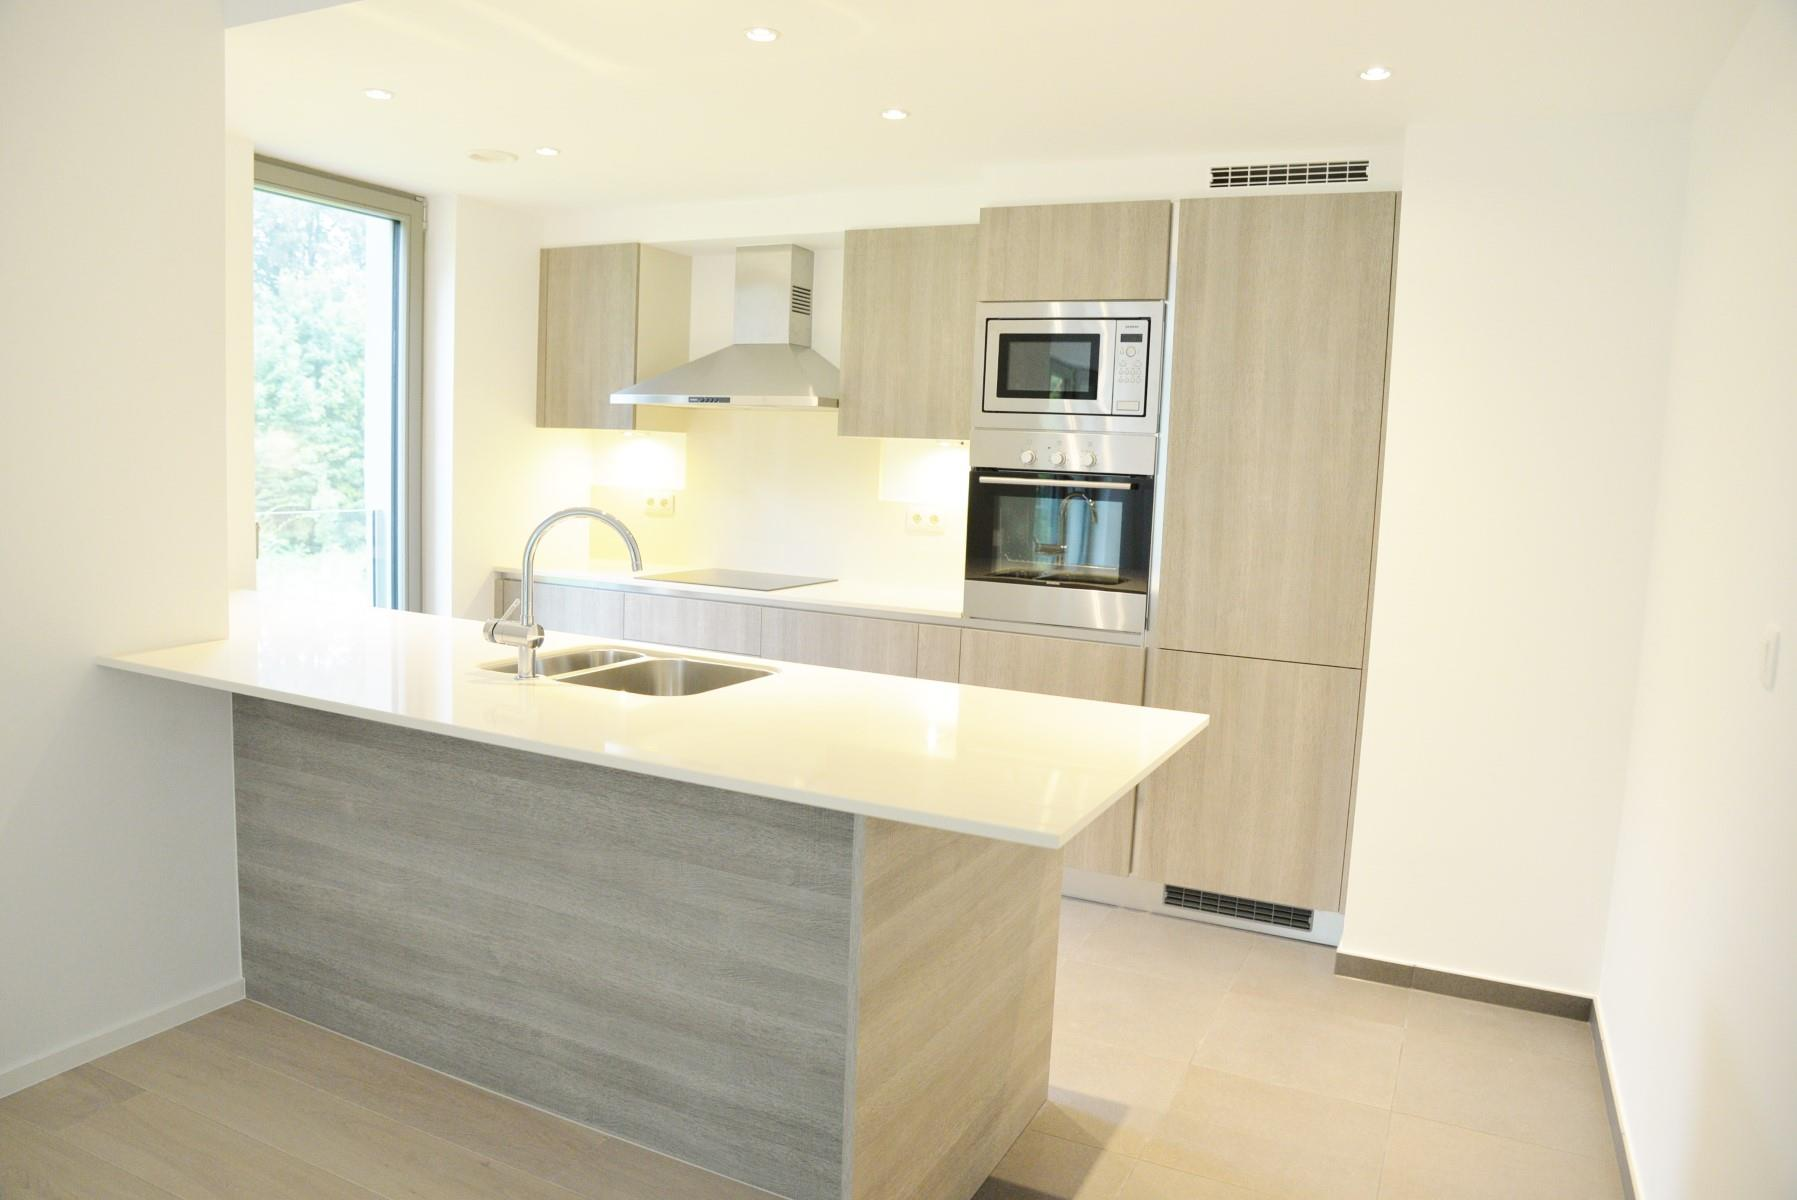 Exceptional apartment  - Uccle - #4183038-4